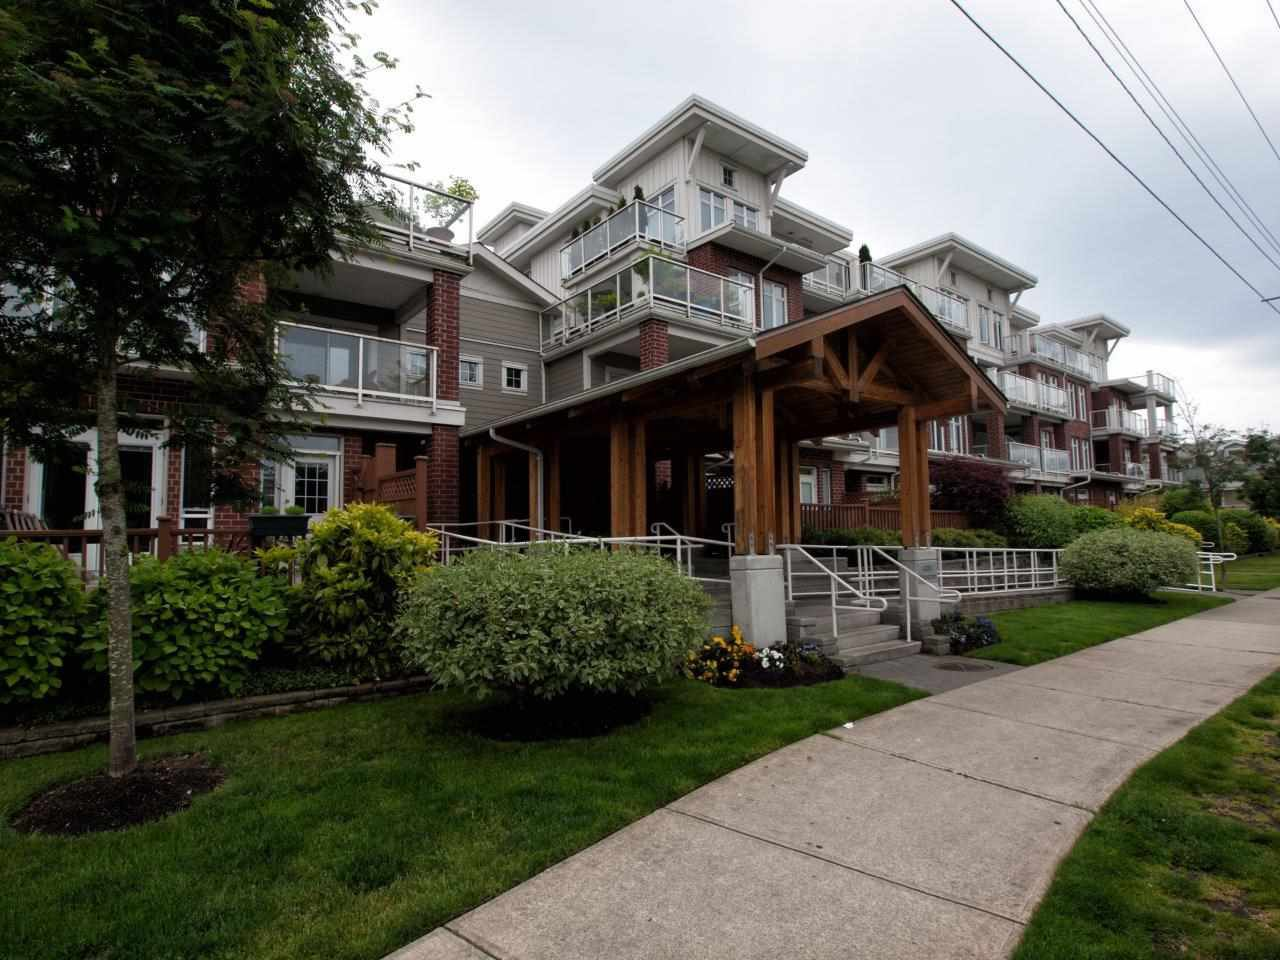 Main Photo: 320 4280 MONCTON Street in Richmond: Steveston South Condo for sale : MLS®# R2243473